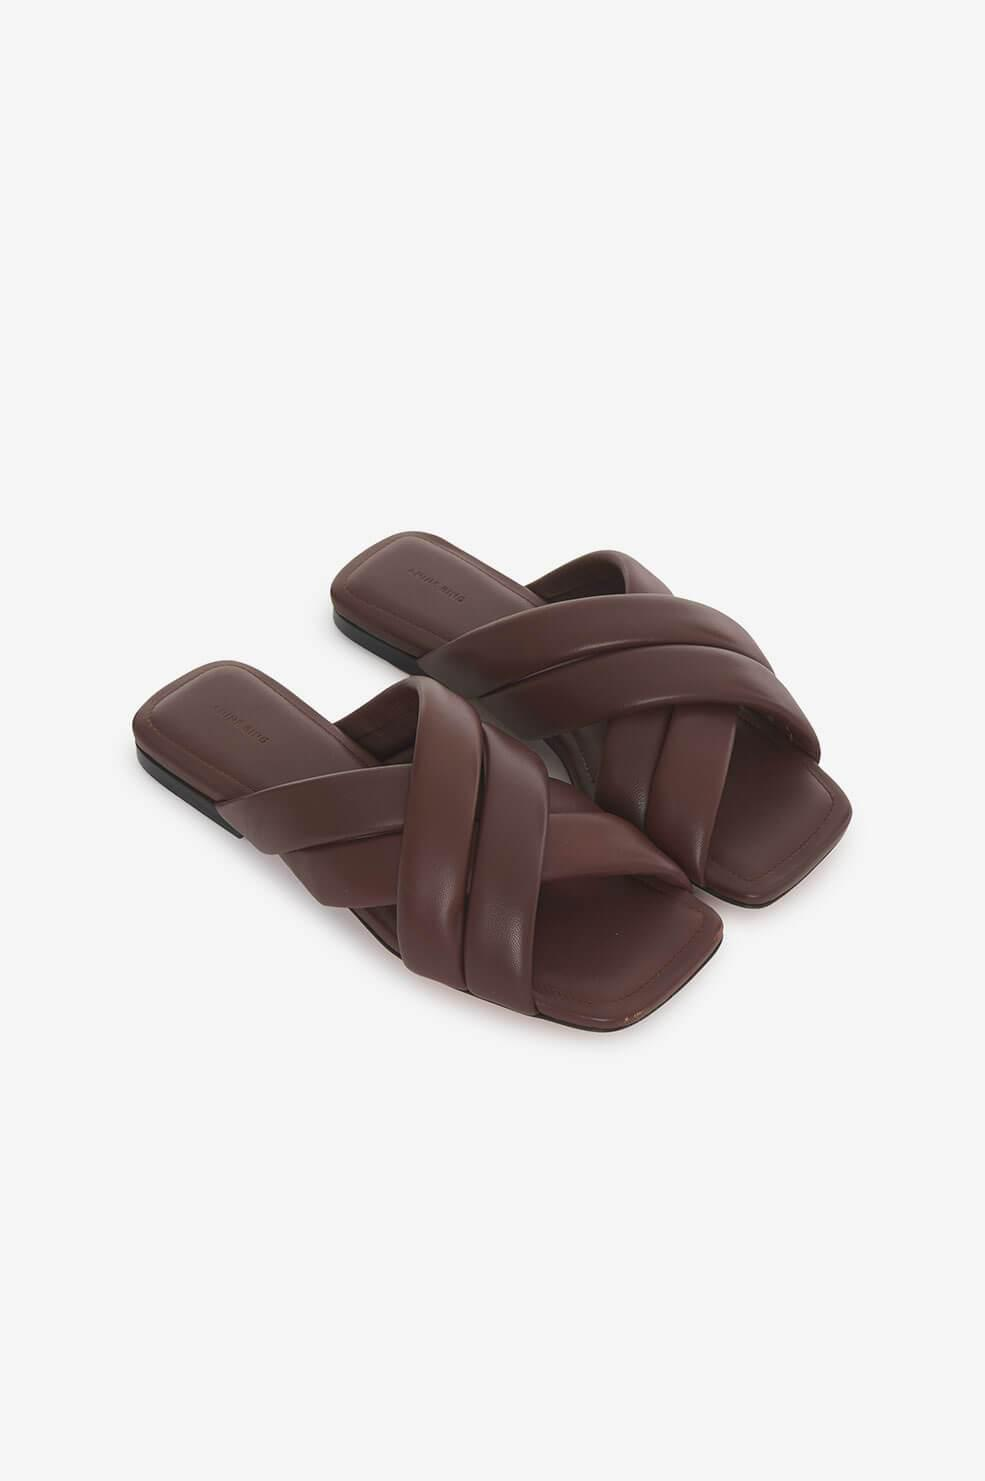 Eve Sandals - Chocolate Brown 1